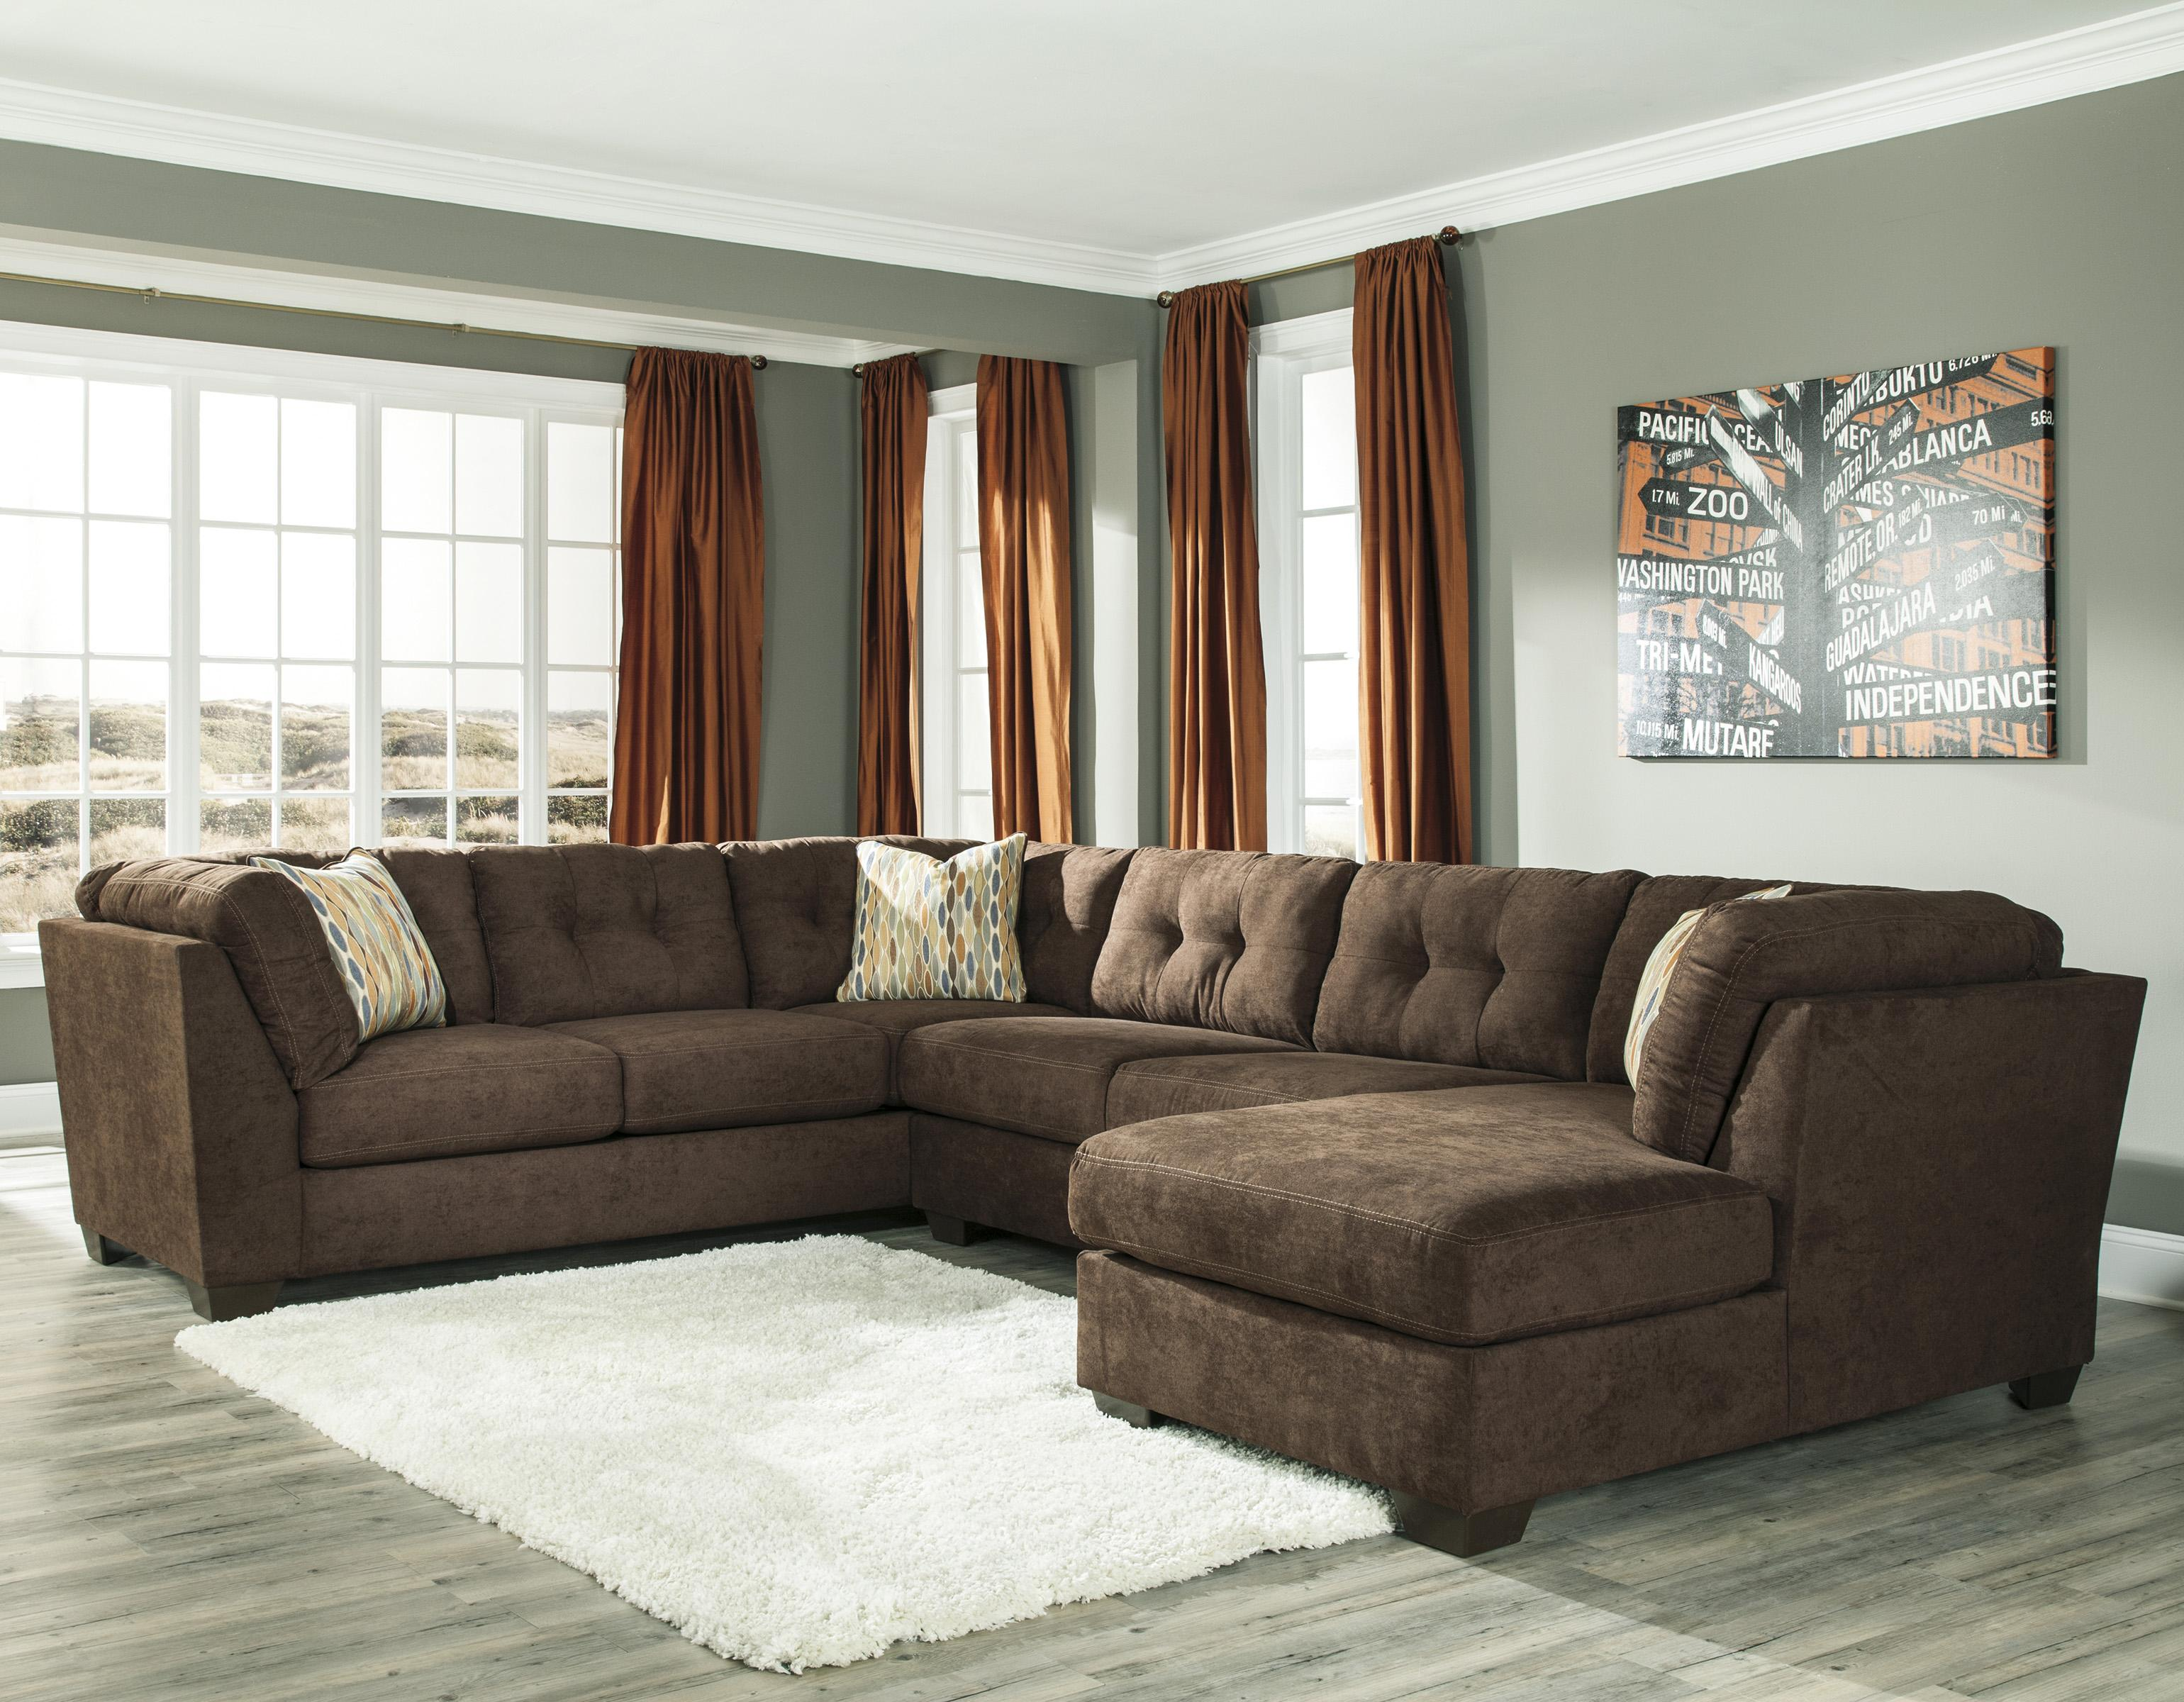 Benchcraft Delta City - Chocolate 3-Piece Modular Sectional with Right Chaise - Item Number: 1970238+34+17